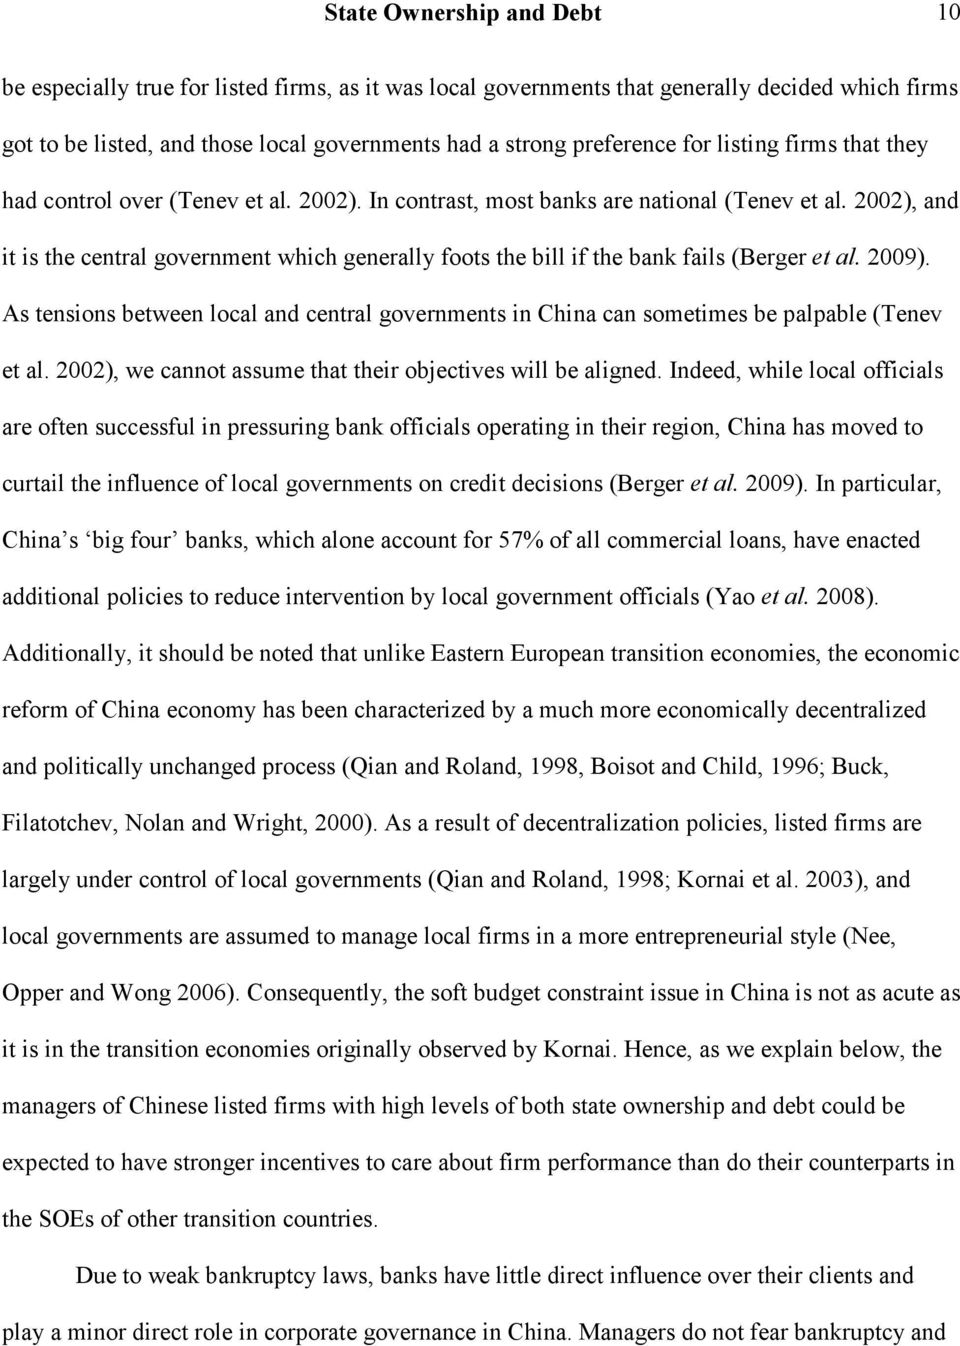 2002), and it is the central government which generally foots the bill if the bank fails (Berger et al. 2009).